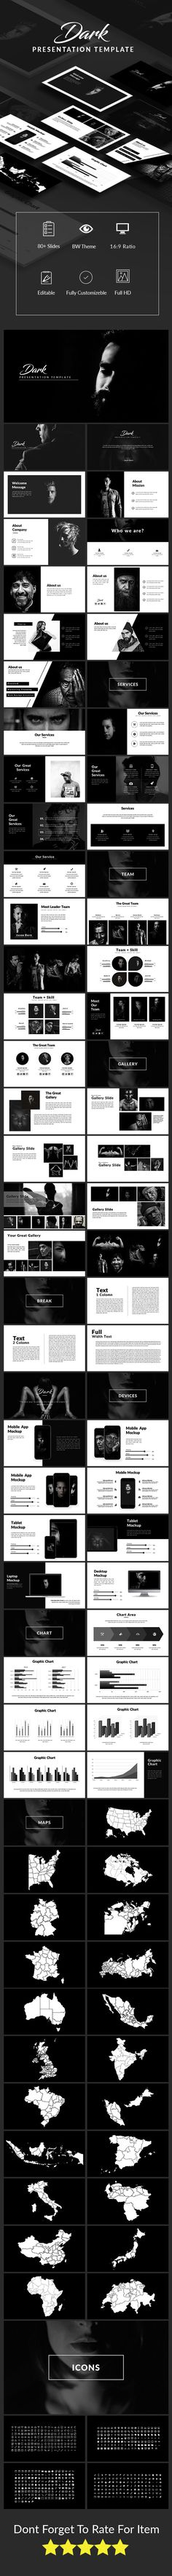 Dark #Presentation Template - #Keynote Templates Presentation Templates Download here: https://graphicriver.net/item/dark-presentation-template/20027986?ref=alena994